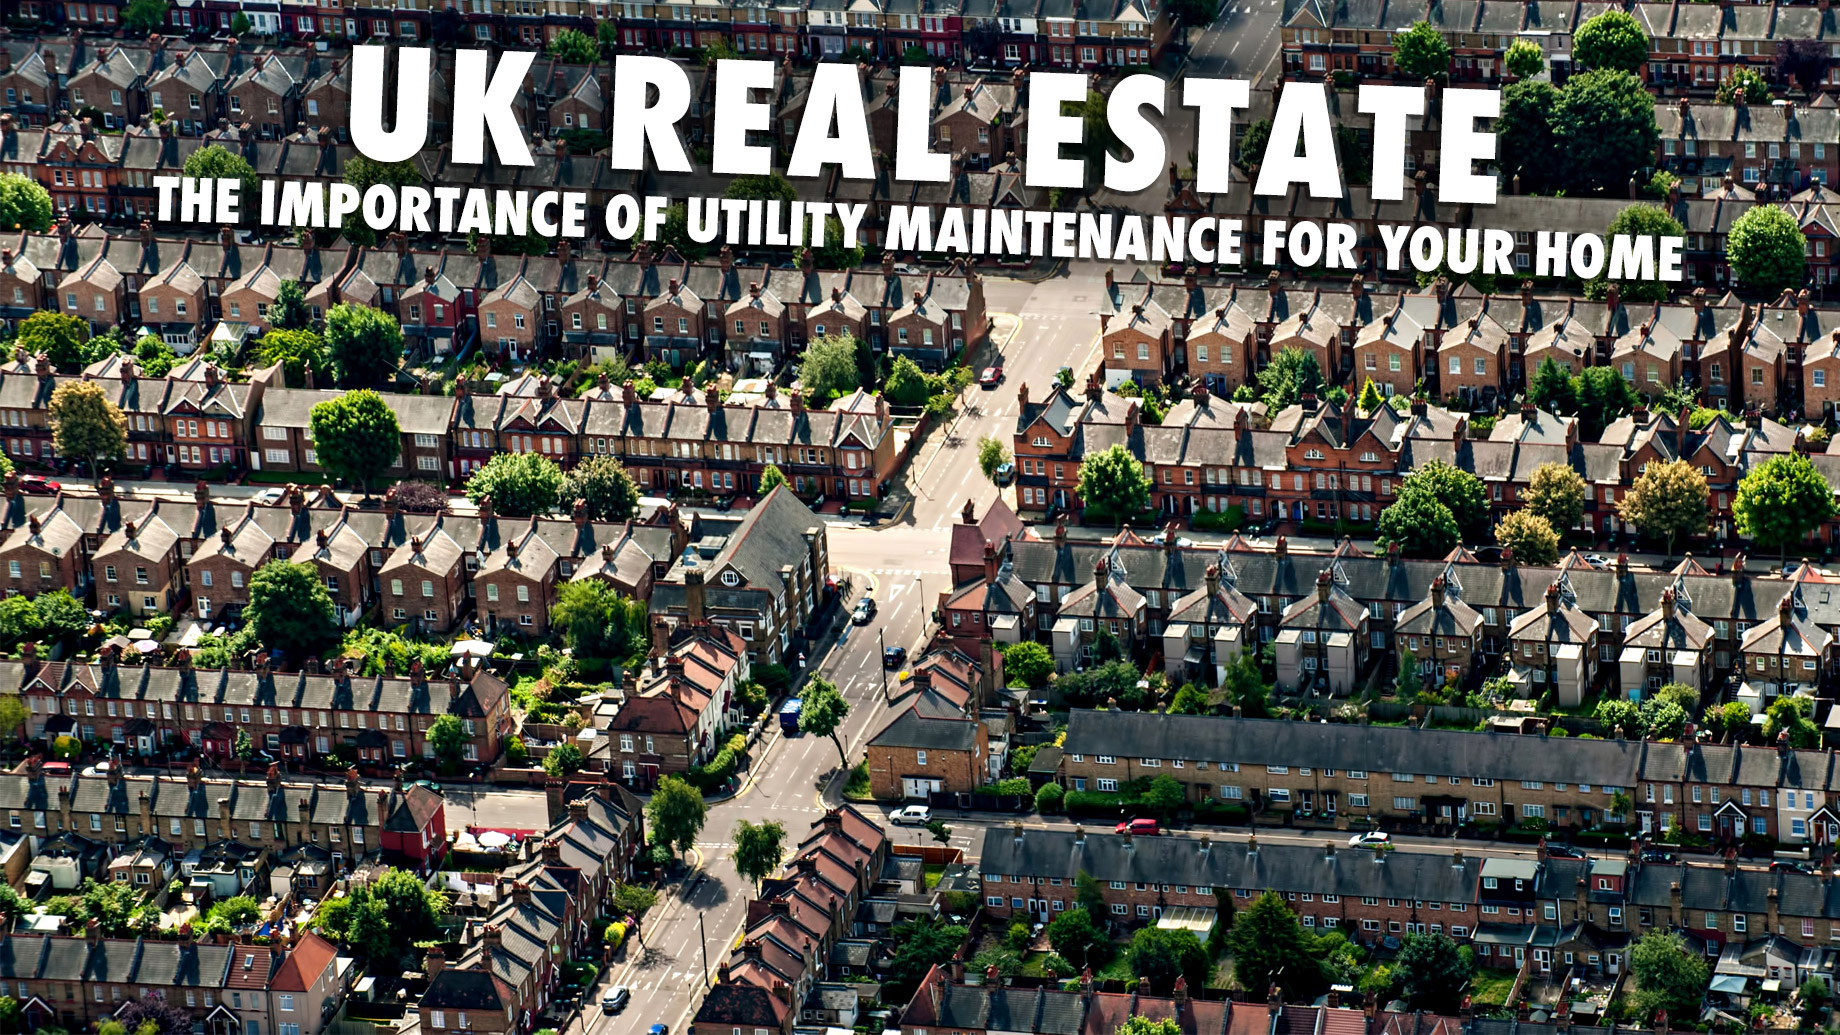 UK Real Estate - The Importance of Utility Maintenance for Your Home